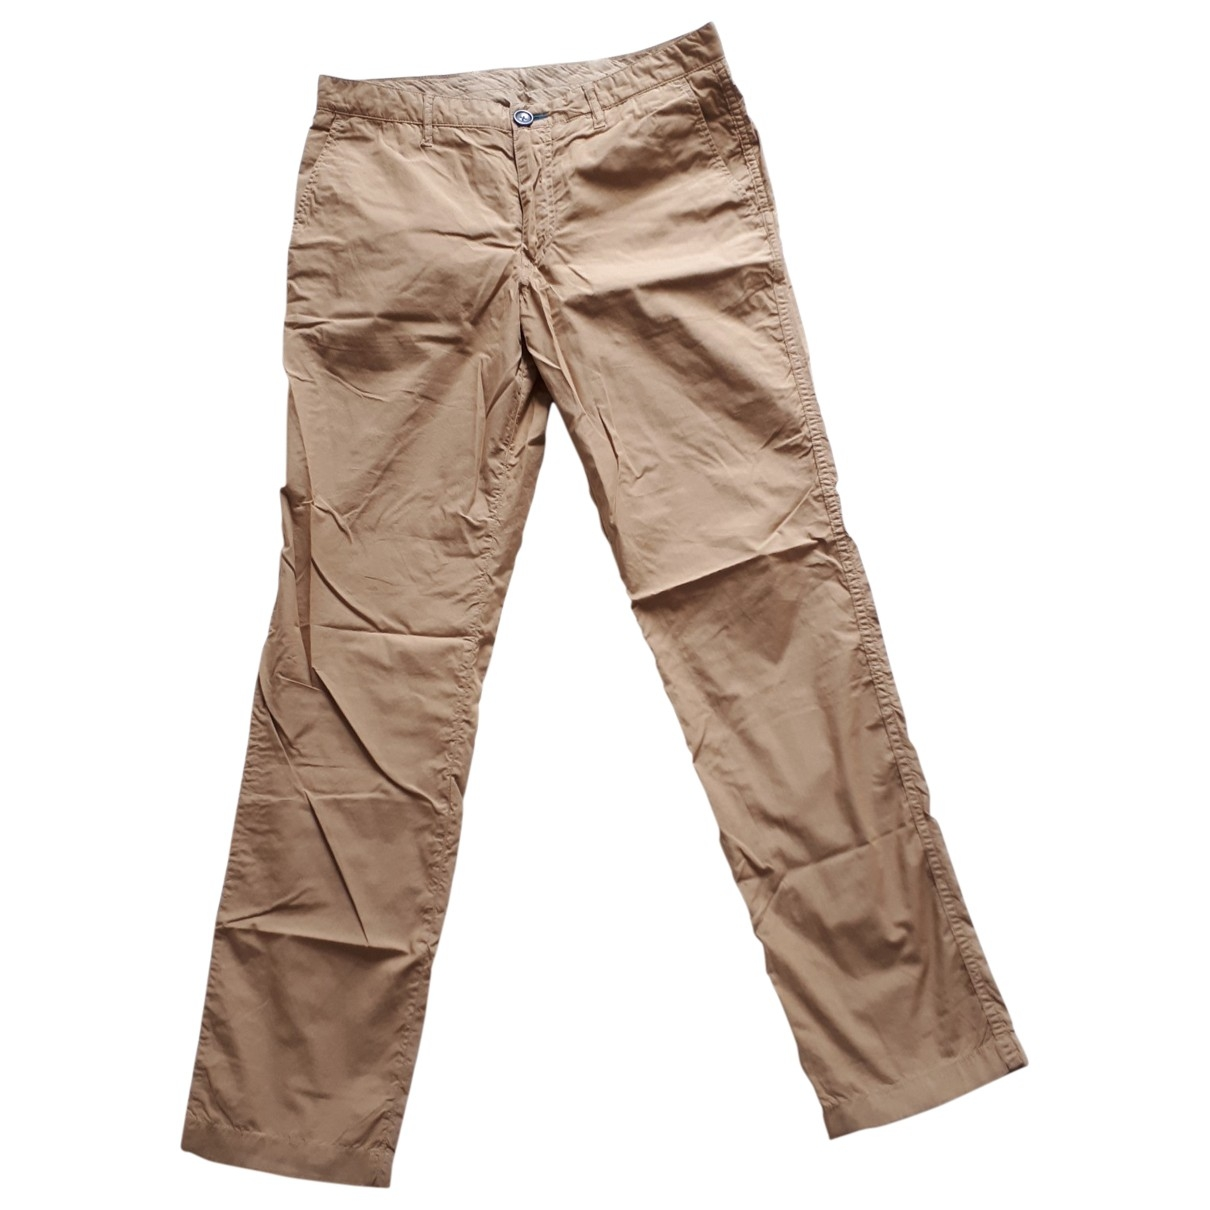 Paul Smith \N Beige Cotton Trousers for Men 32 UK - US